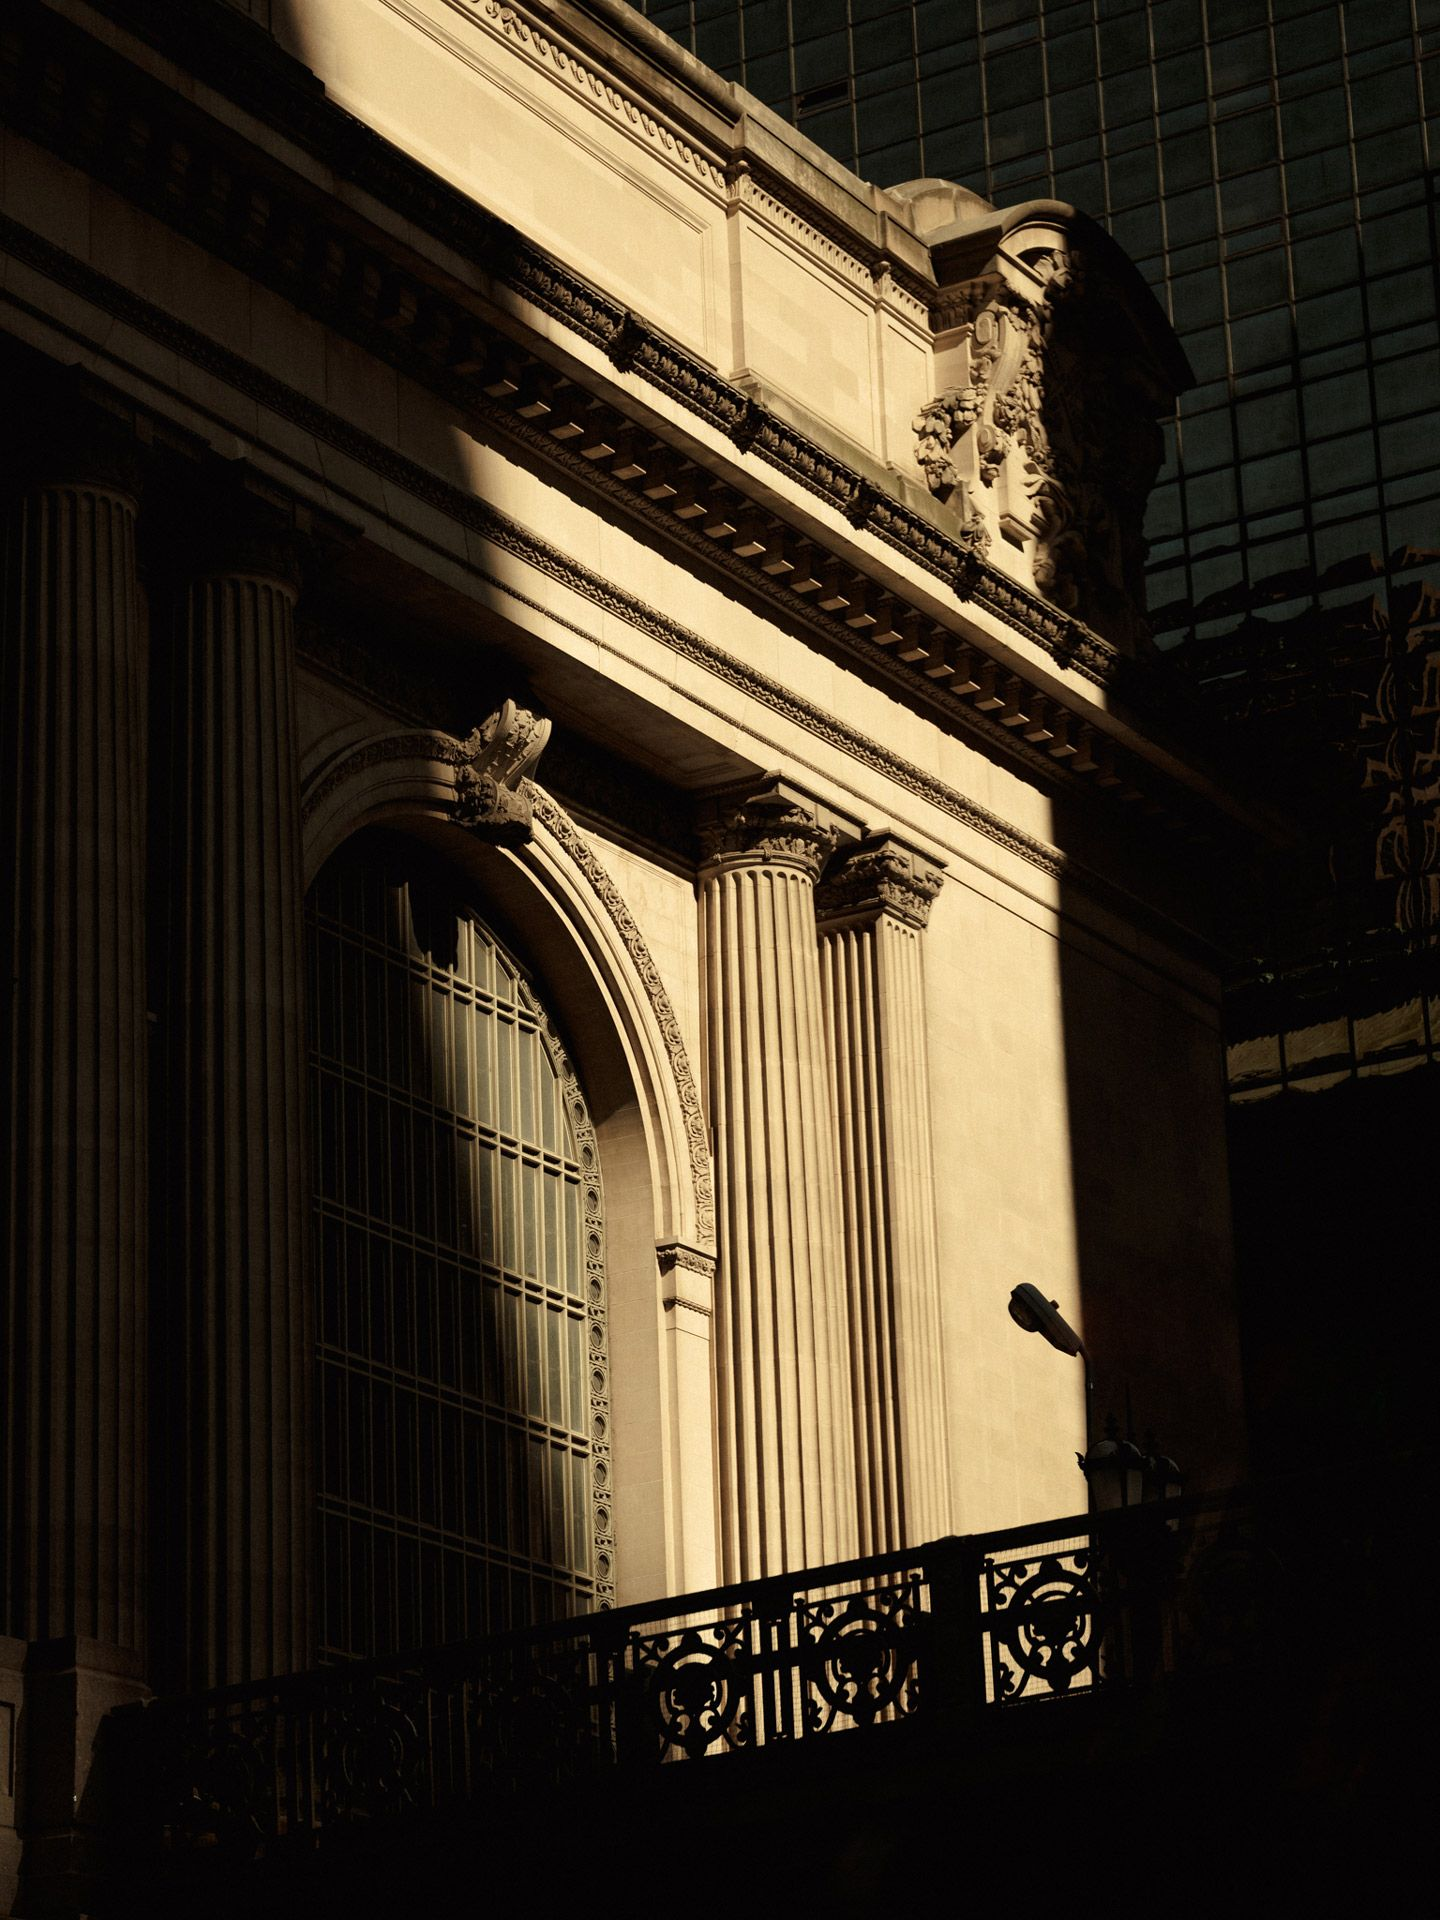 historical building of Toronto in the sun photographed by Alexi Hobbs for PSP